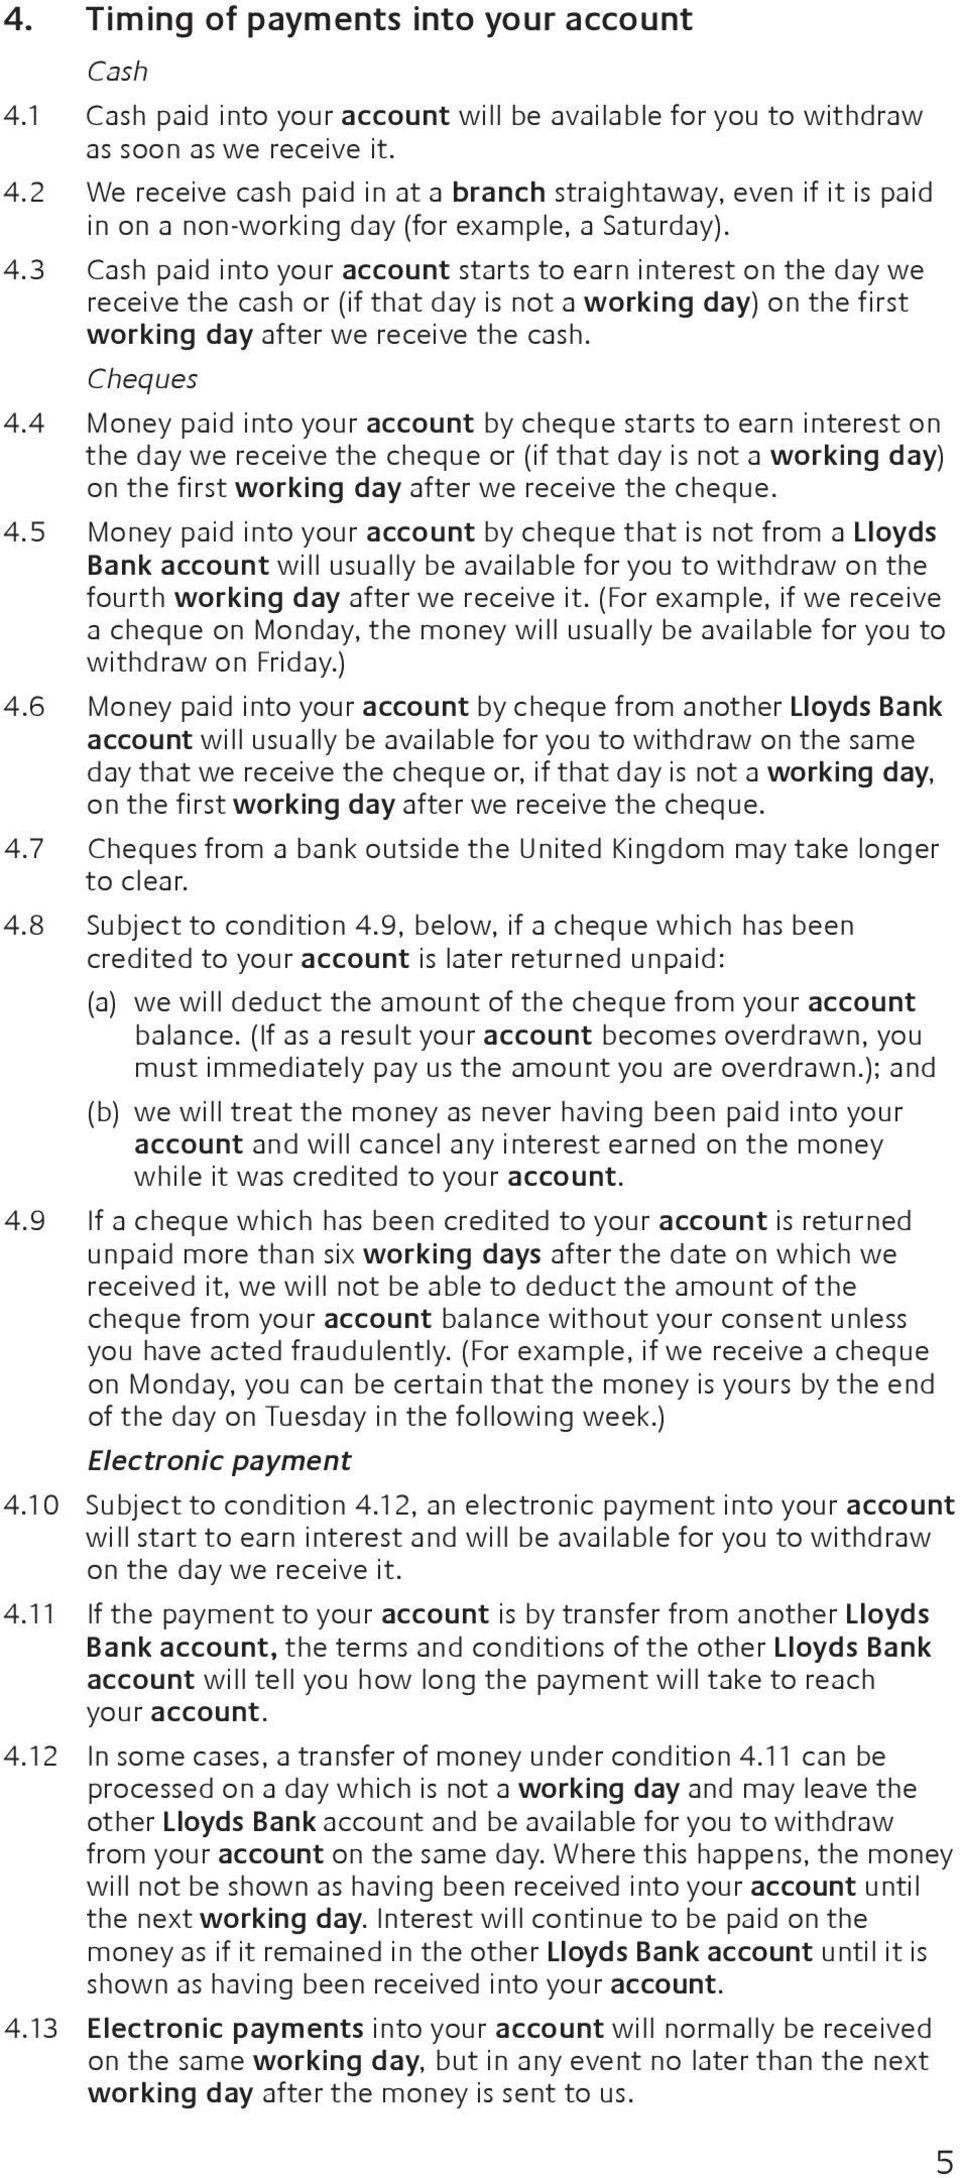 4 Money paid into your account by cheque starts to earn interest on the day we receive the cheque or (if that day is not a working day) on the first working day after we receive the cheque. 4.